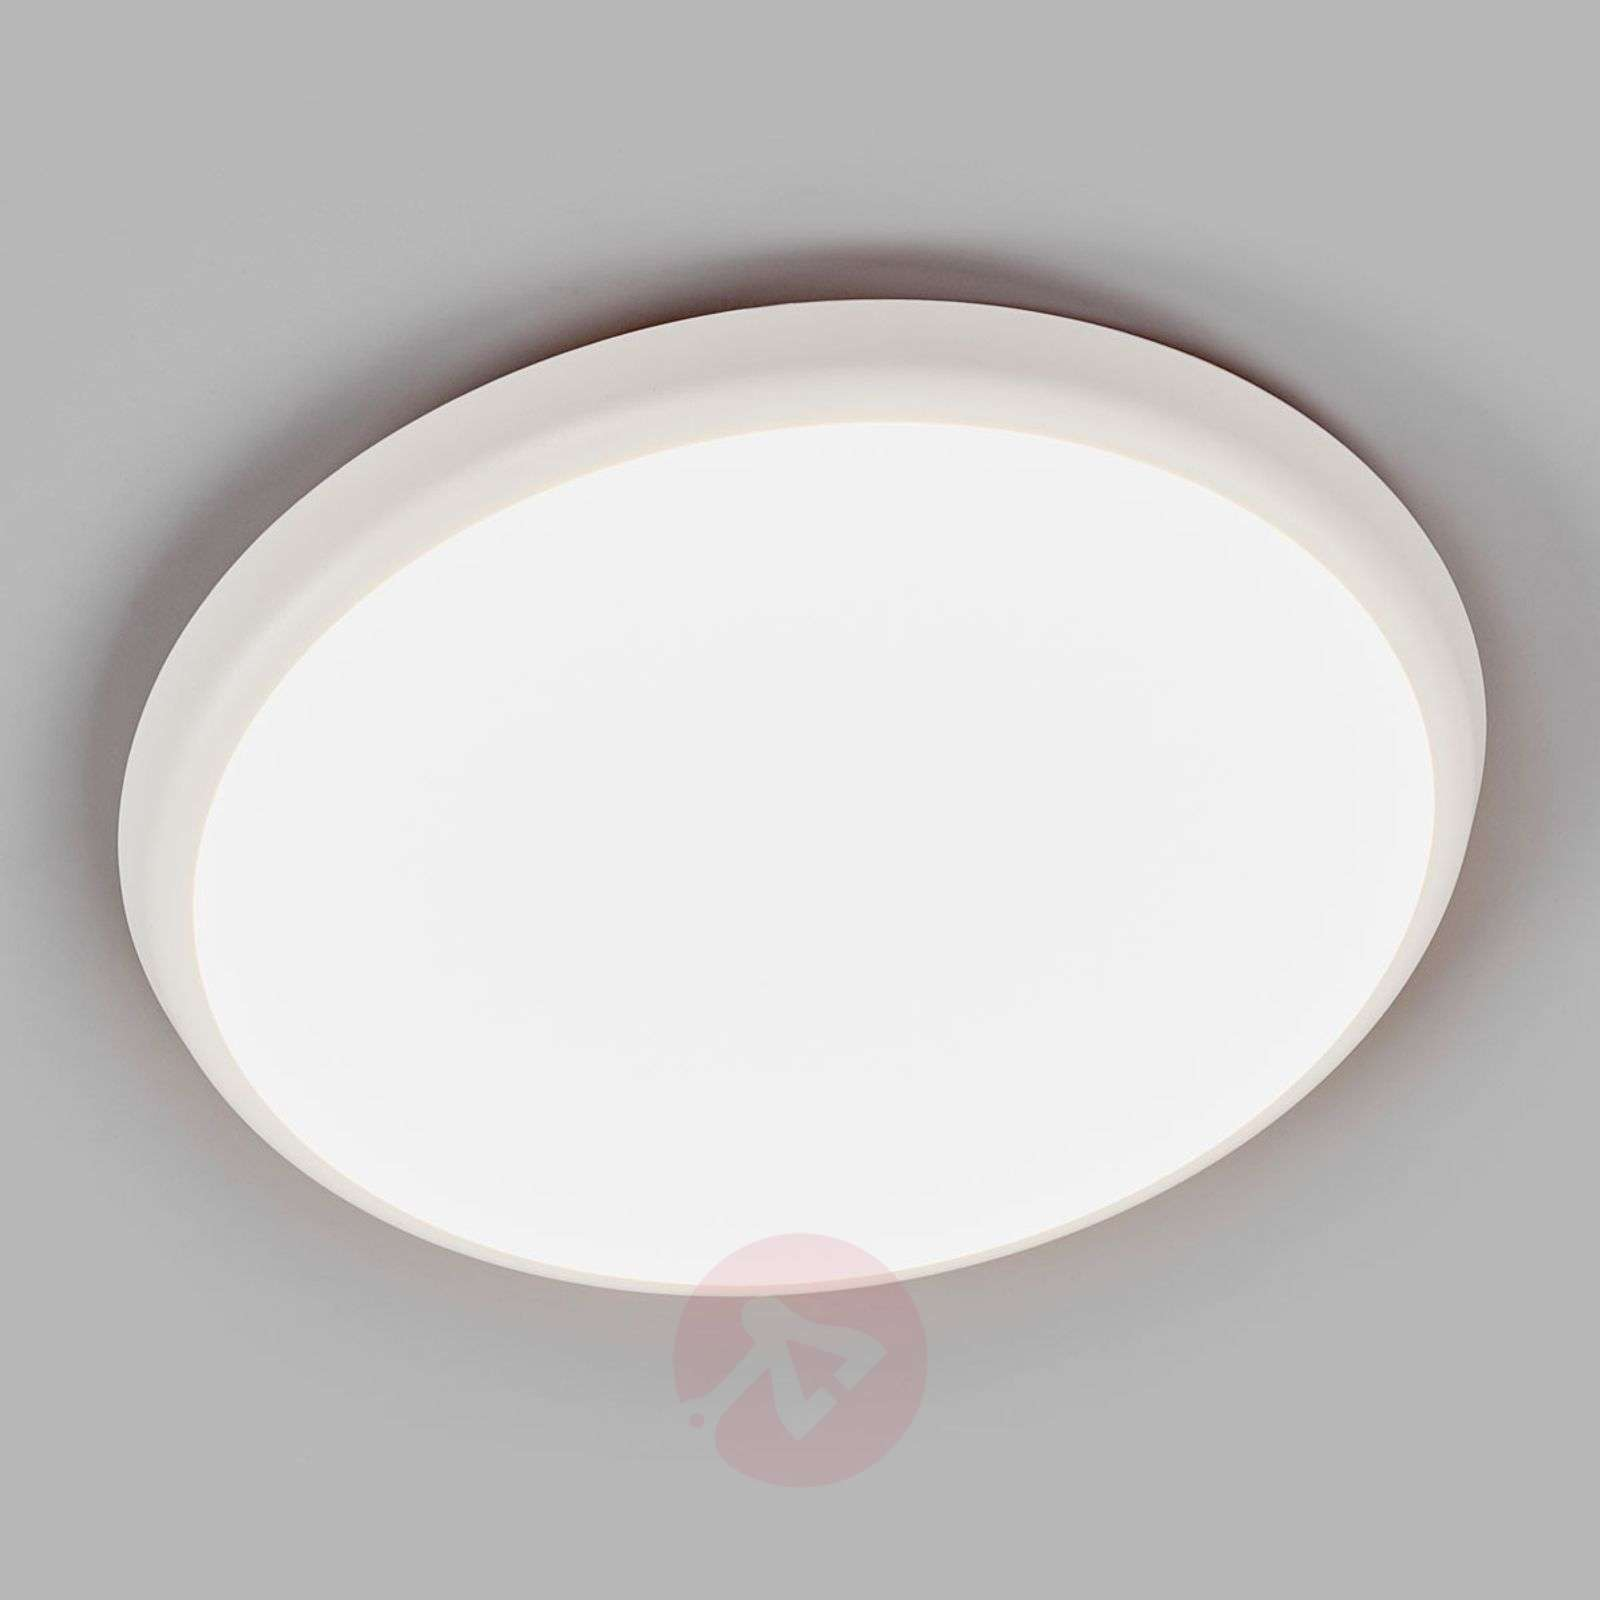 Plafoniere Industriali Diametro 30 : Acquista augustin discreta plafoniera led 30 cm lampade.it